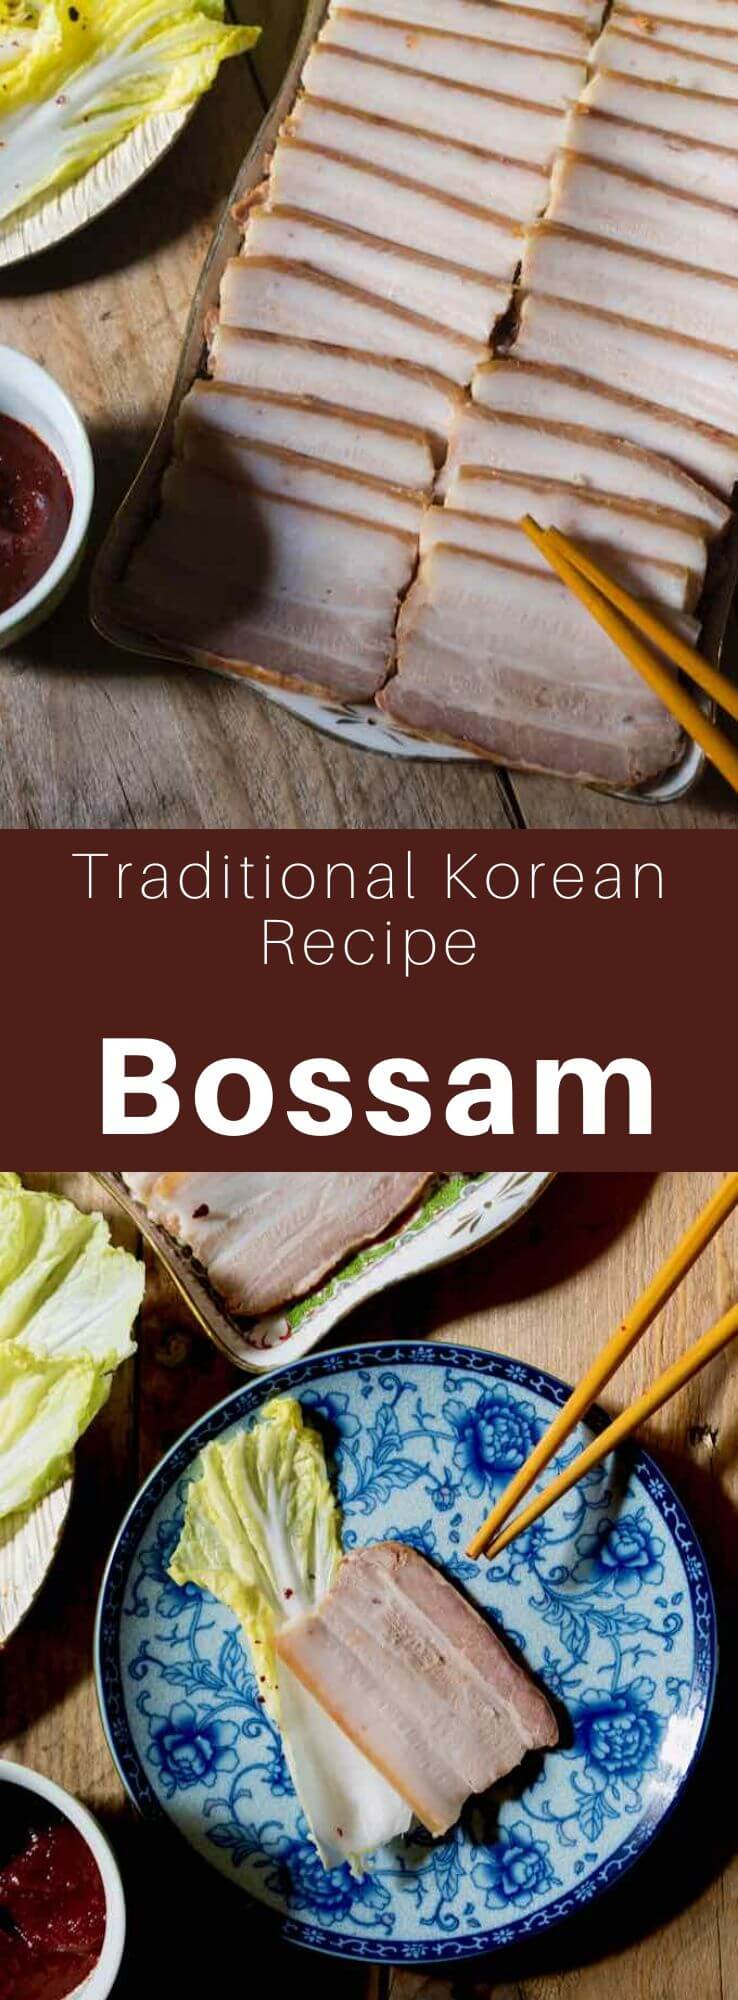 Bossam (보쌈, 褓) is a Korean dish generally made with pork belly boiled in spices and thinly sliced, then wrapped in salted napa cabbage leaves with a radish salad and salted shrimp. #KoreanFood #KoreanRecipe #KoreanCuisine #WorldCuisine #196flavors